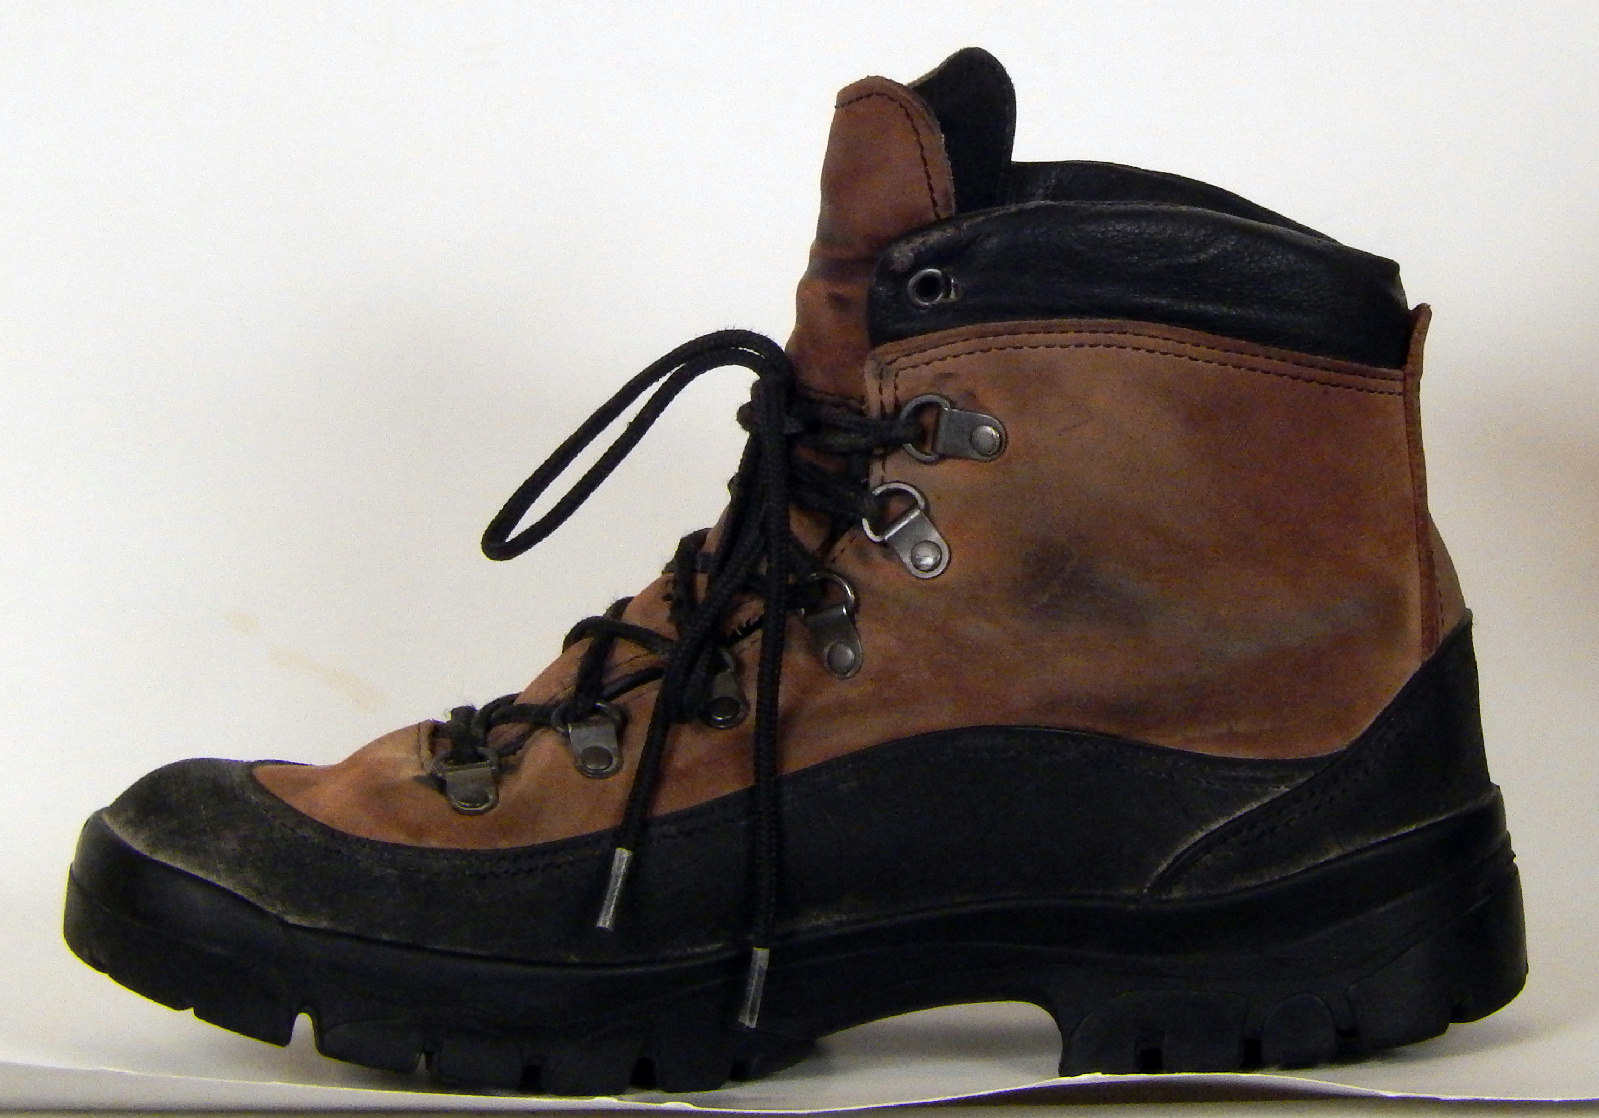 Danner Combat Hiker Boots Brown Size 10 1 2 310 Military